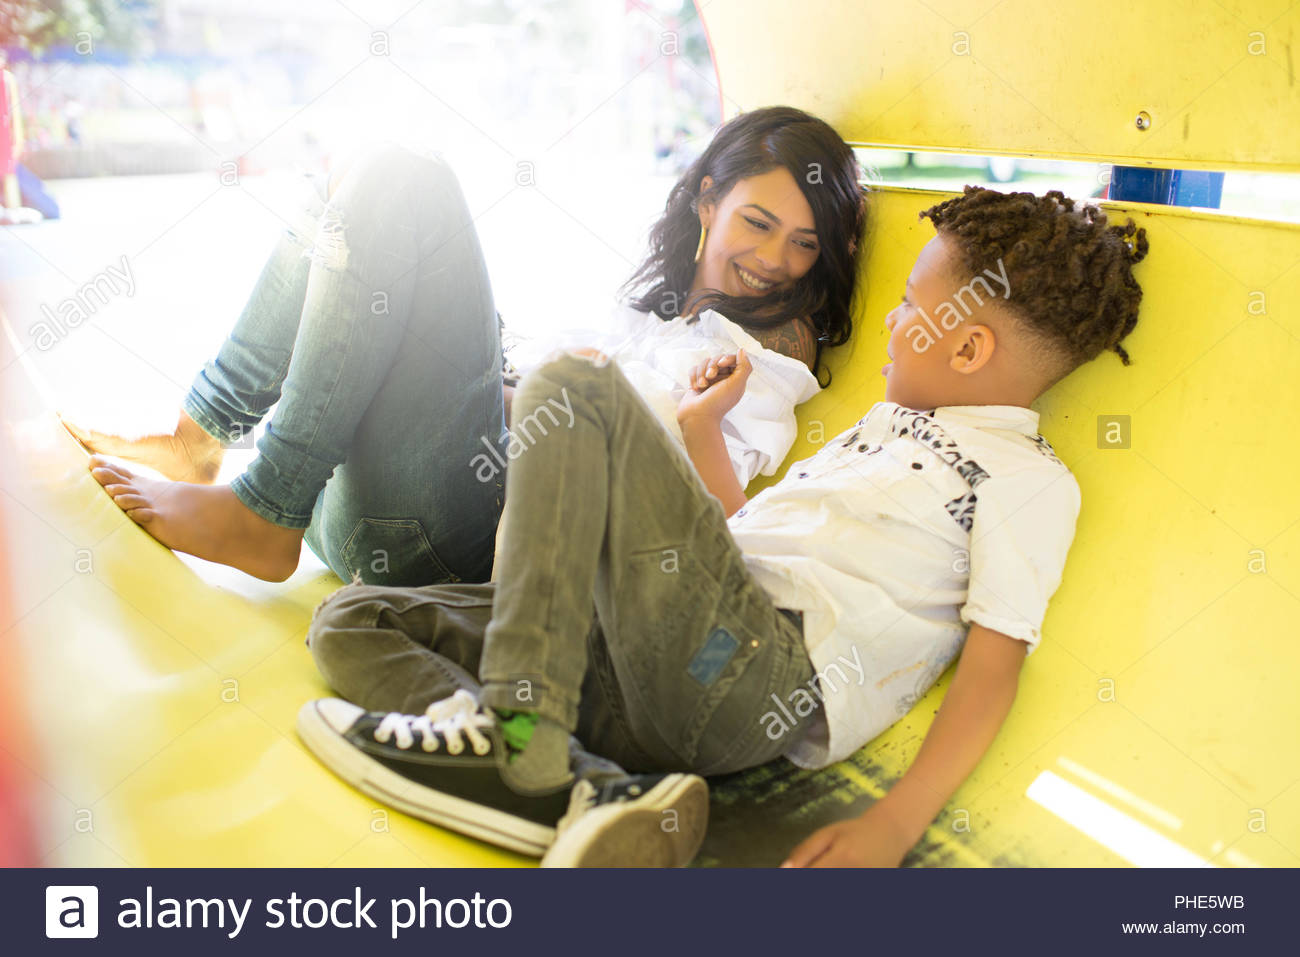 Mother and son playing at playground - Stock Image